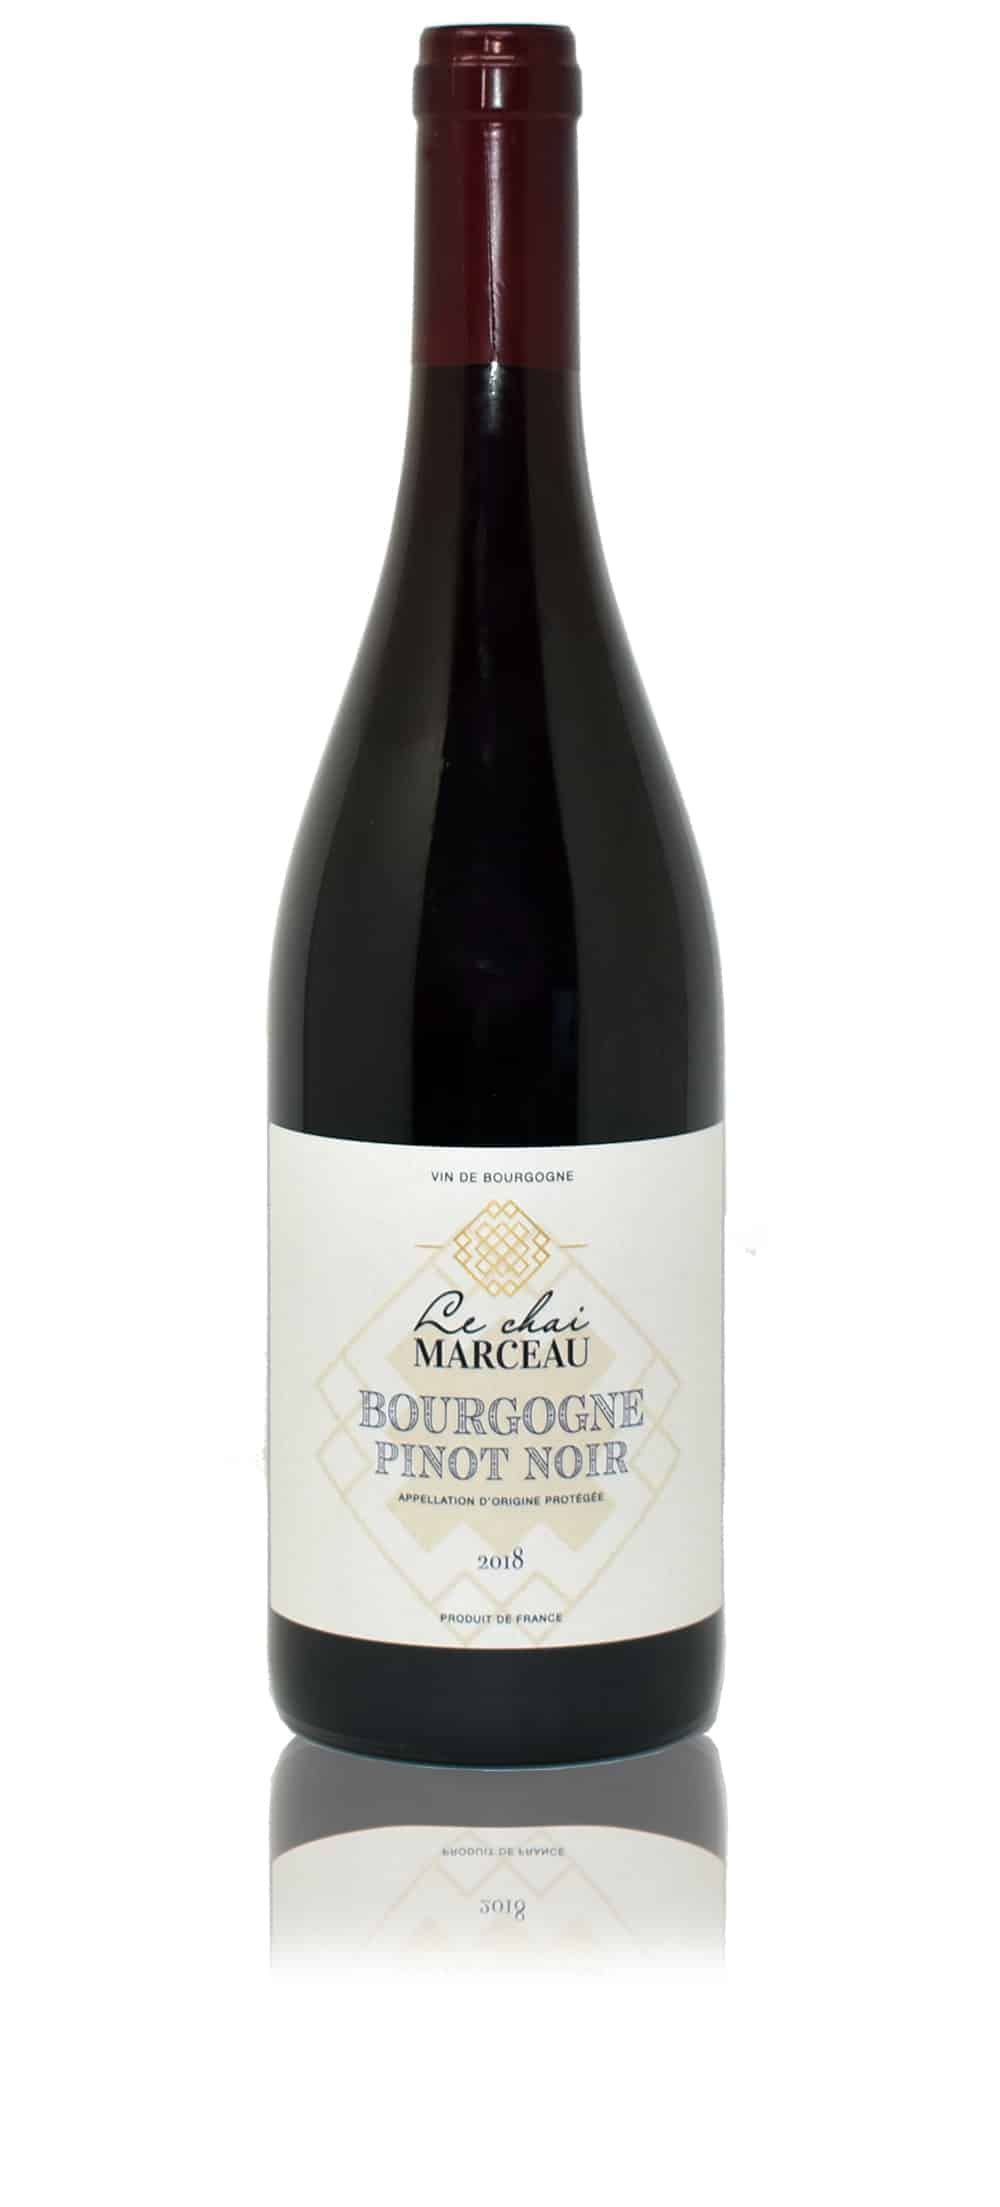 A bottle of Le Chai Marceau Pinot Noir wine